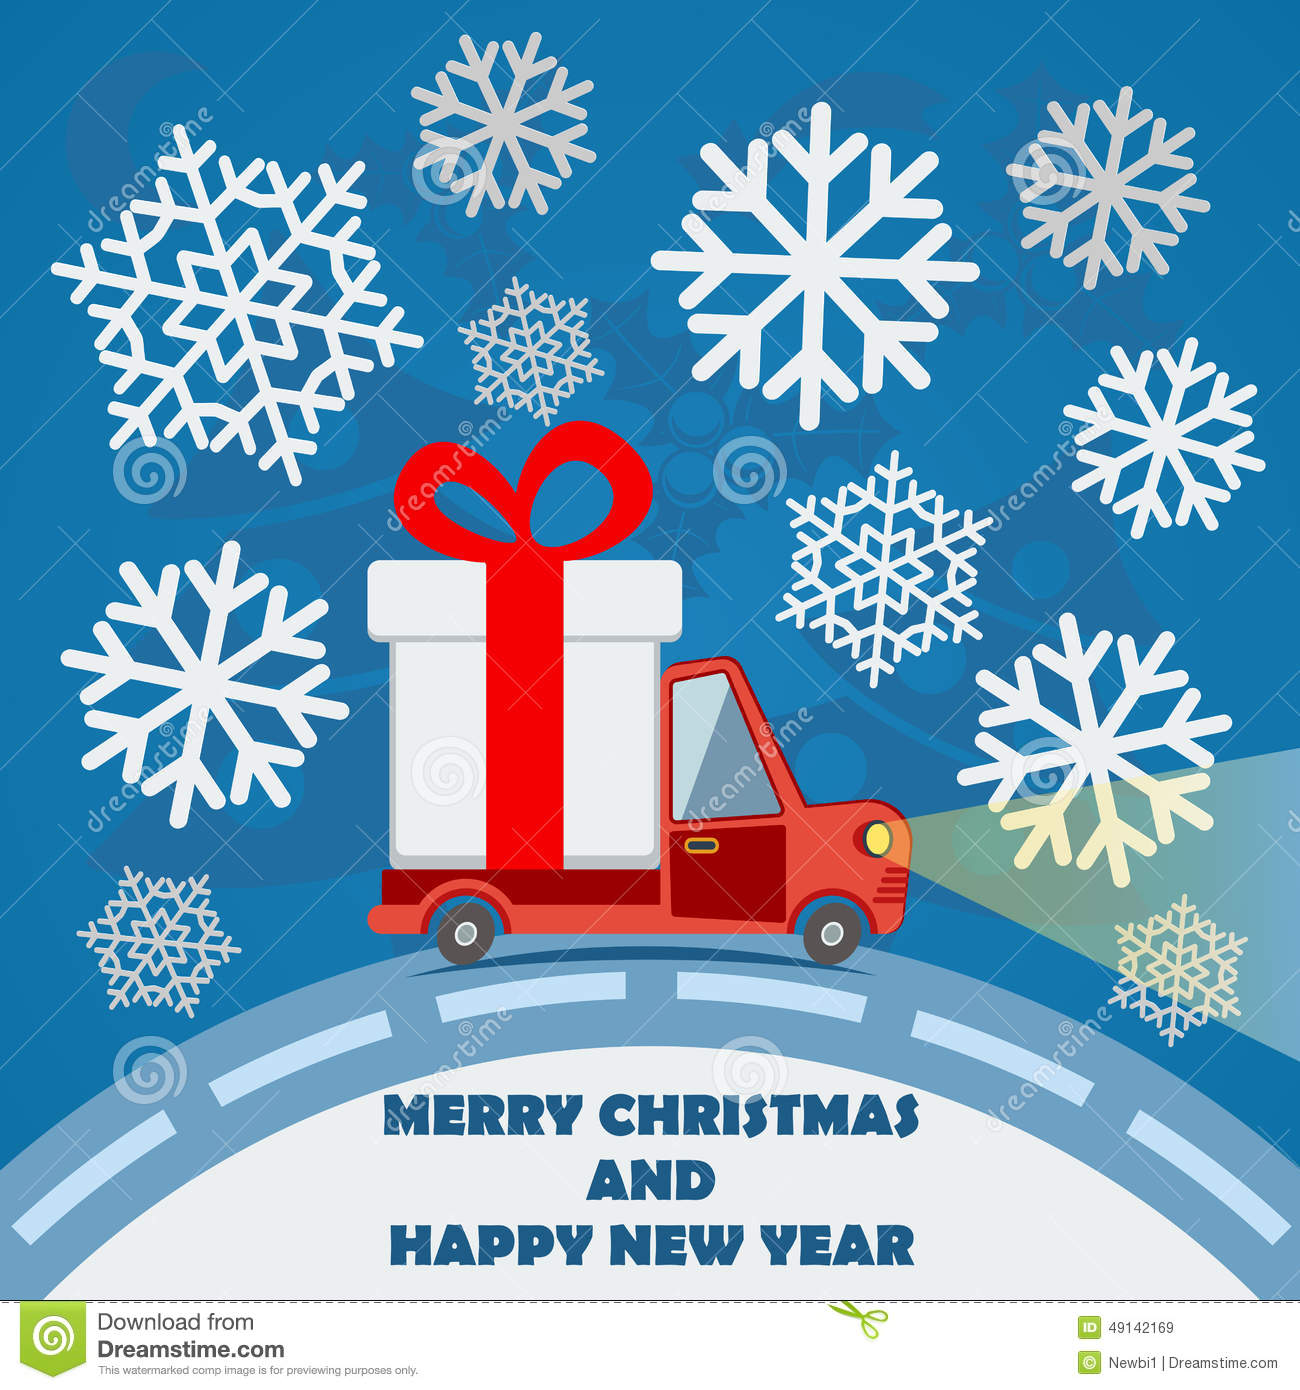 Gift delivery van in Christmas eve.  sc 1 st  Dreamstime.com & Gift Delivery Van In Christmas Eve. Stock Vector - Illustration of ...